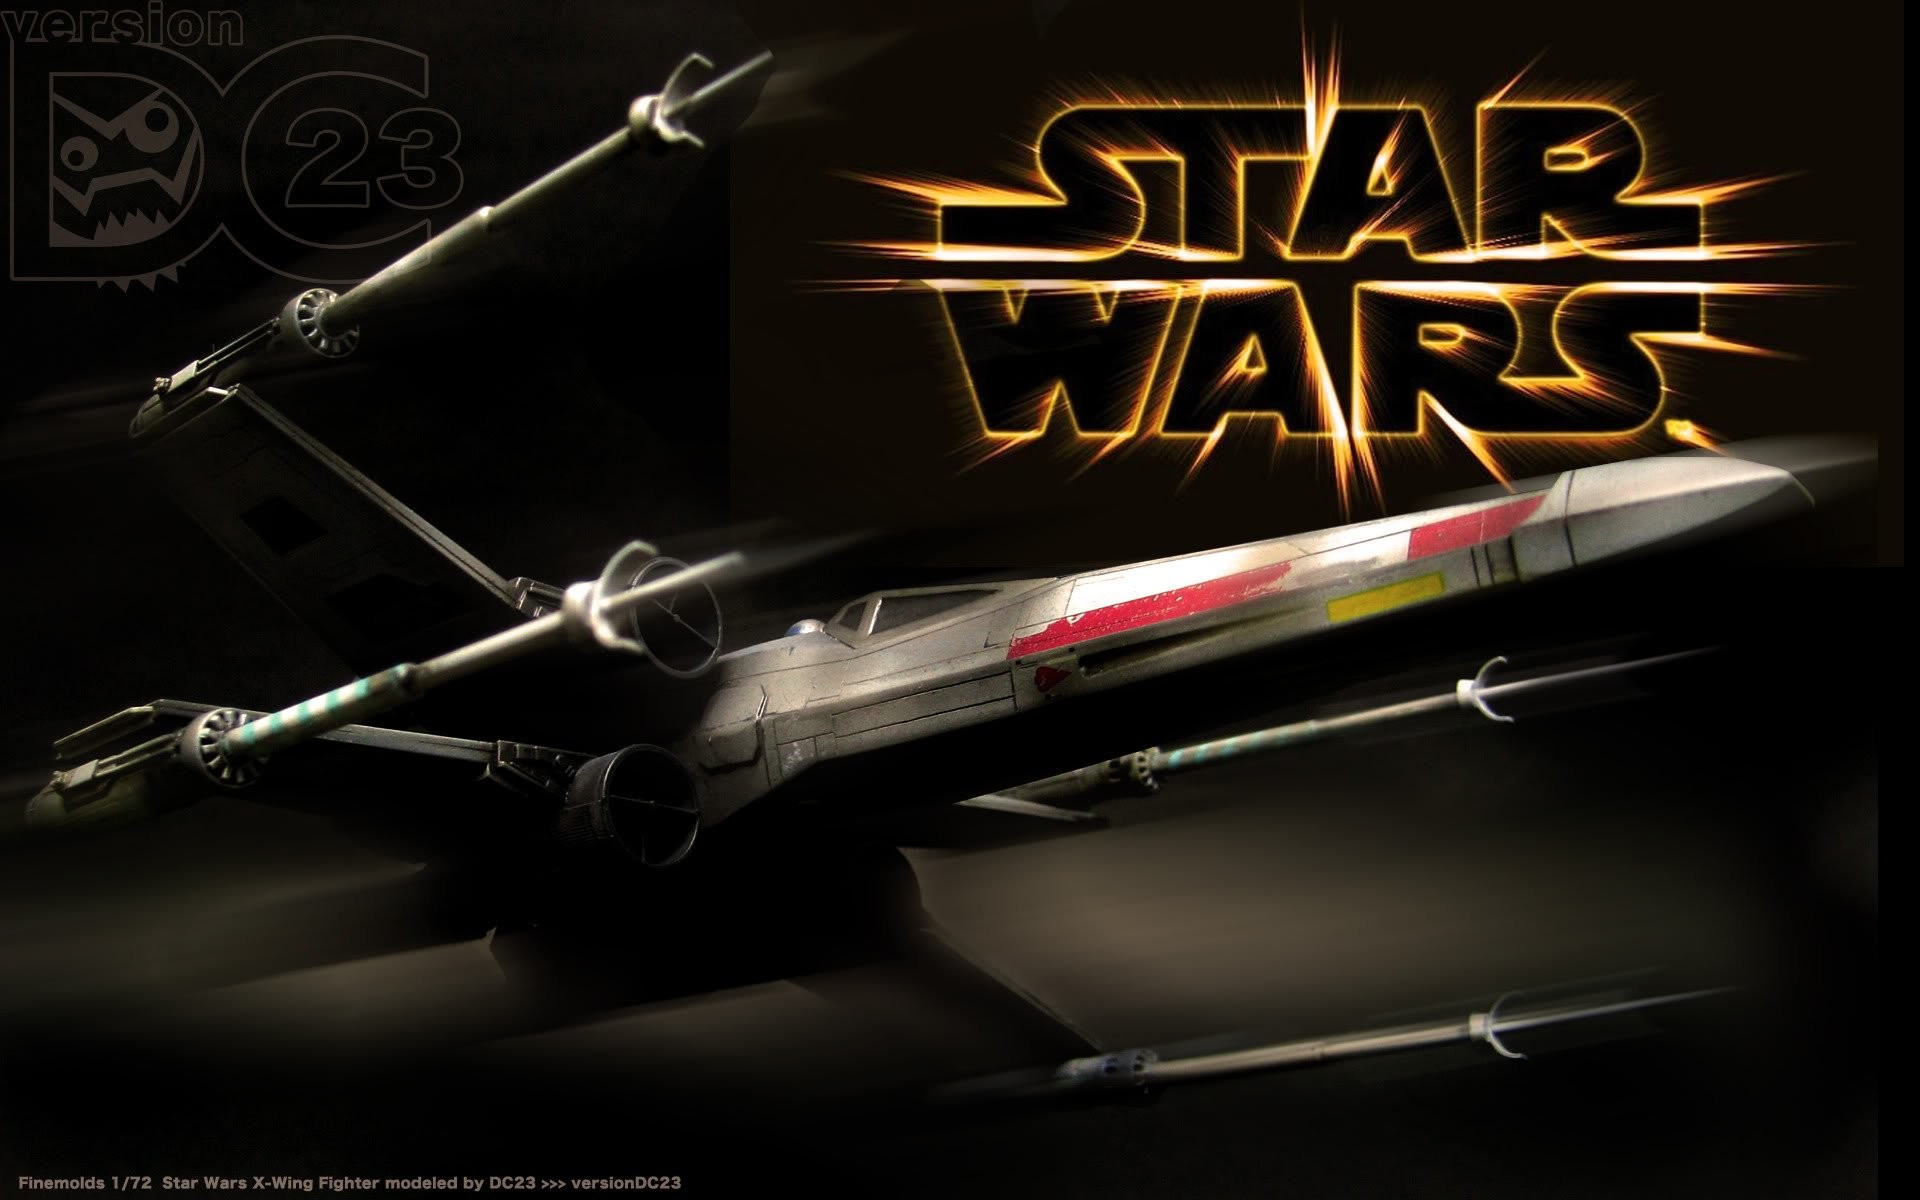 1920x1200 STAR WARS X -WING spaceship futuristic space sci-fi xwing wallpaper |   | 811229 | WallpaperUP